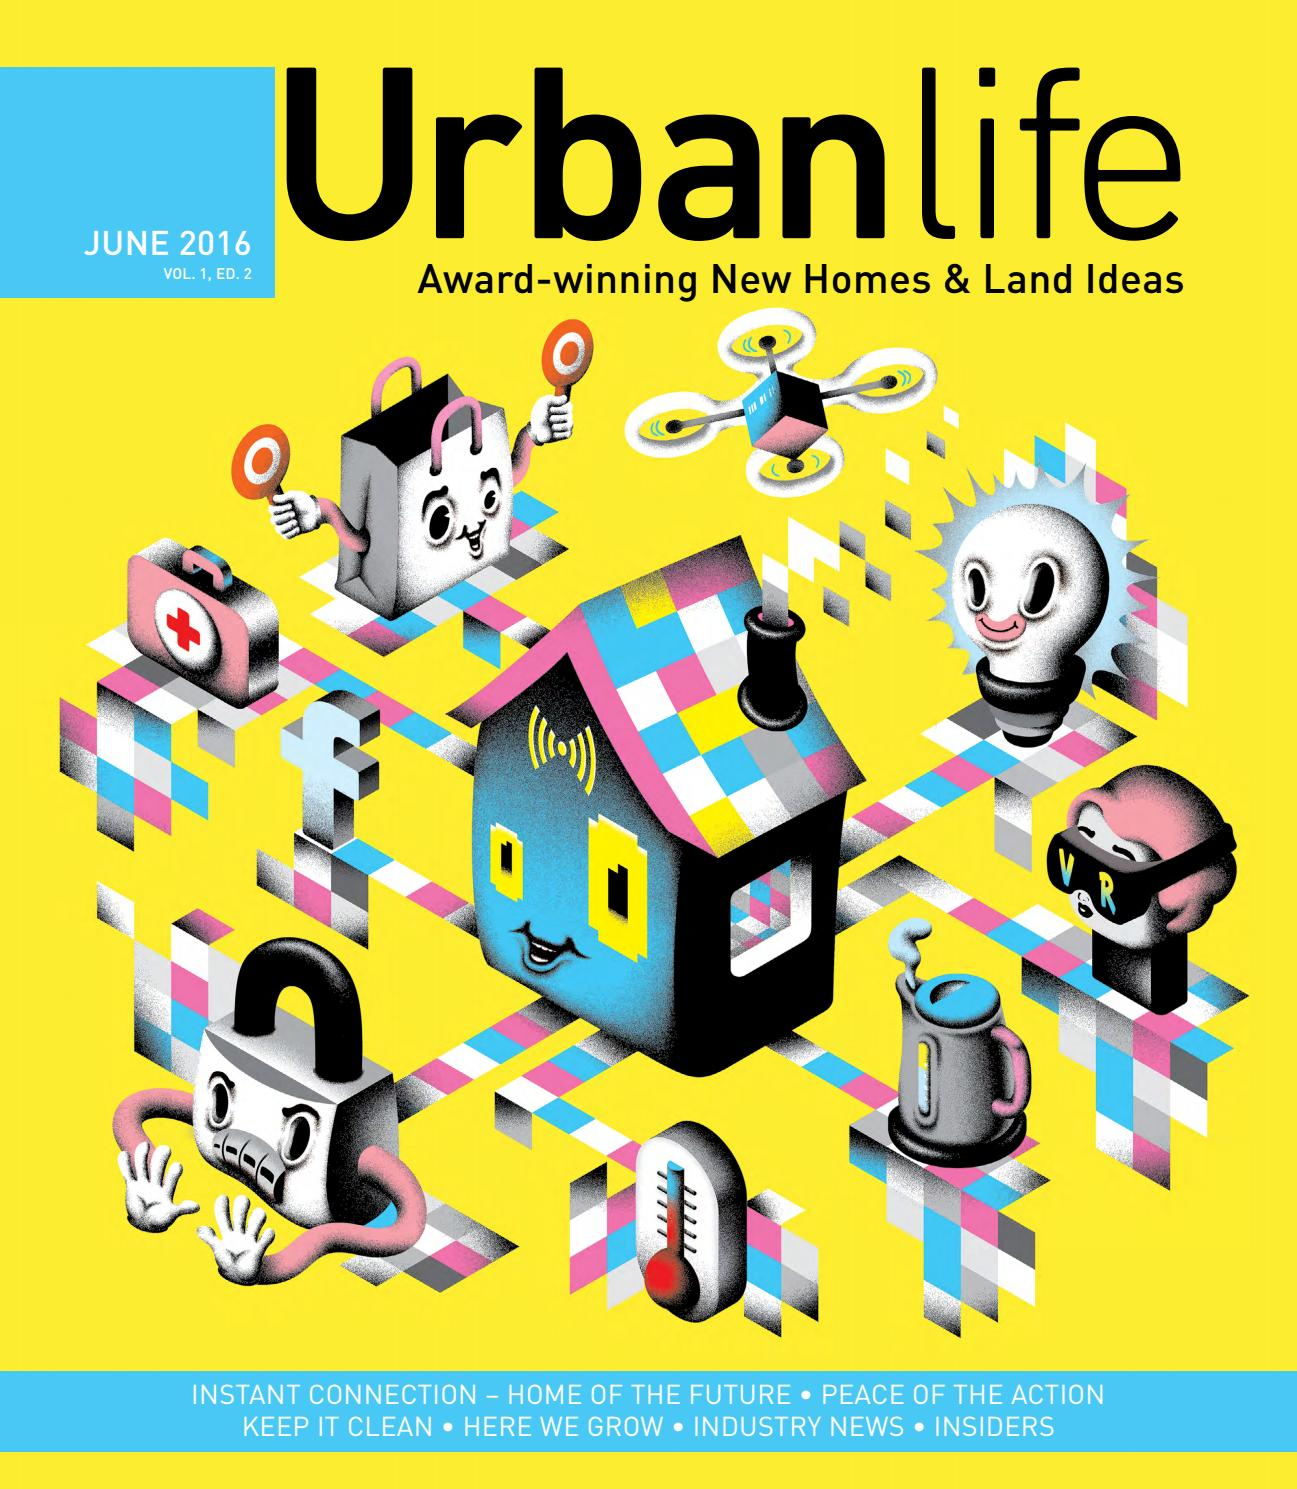 Urban Life Magazine Issue 2 by Publicity Press - issuu